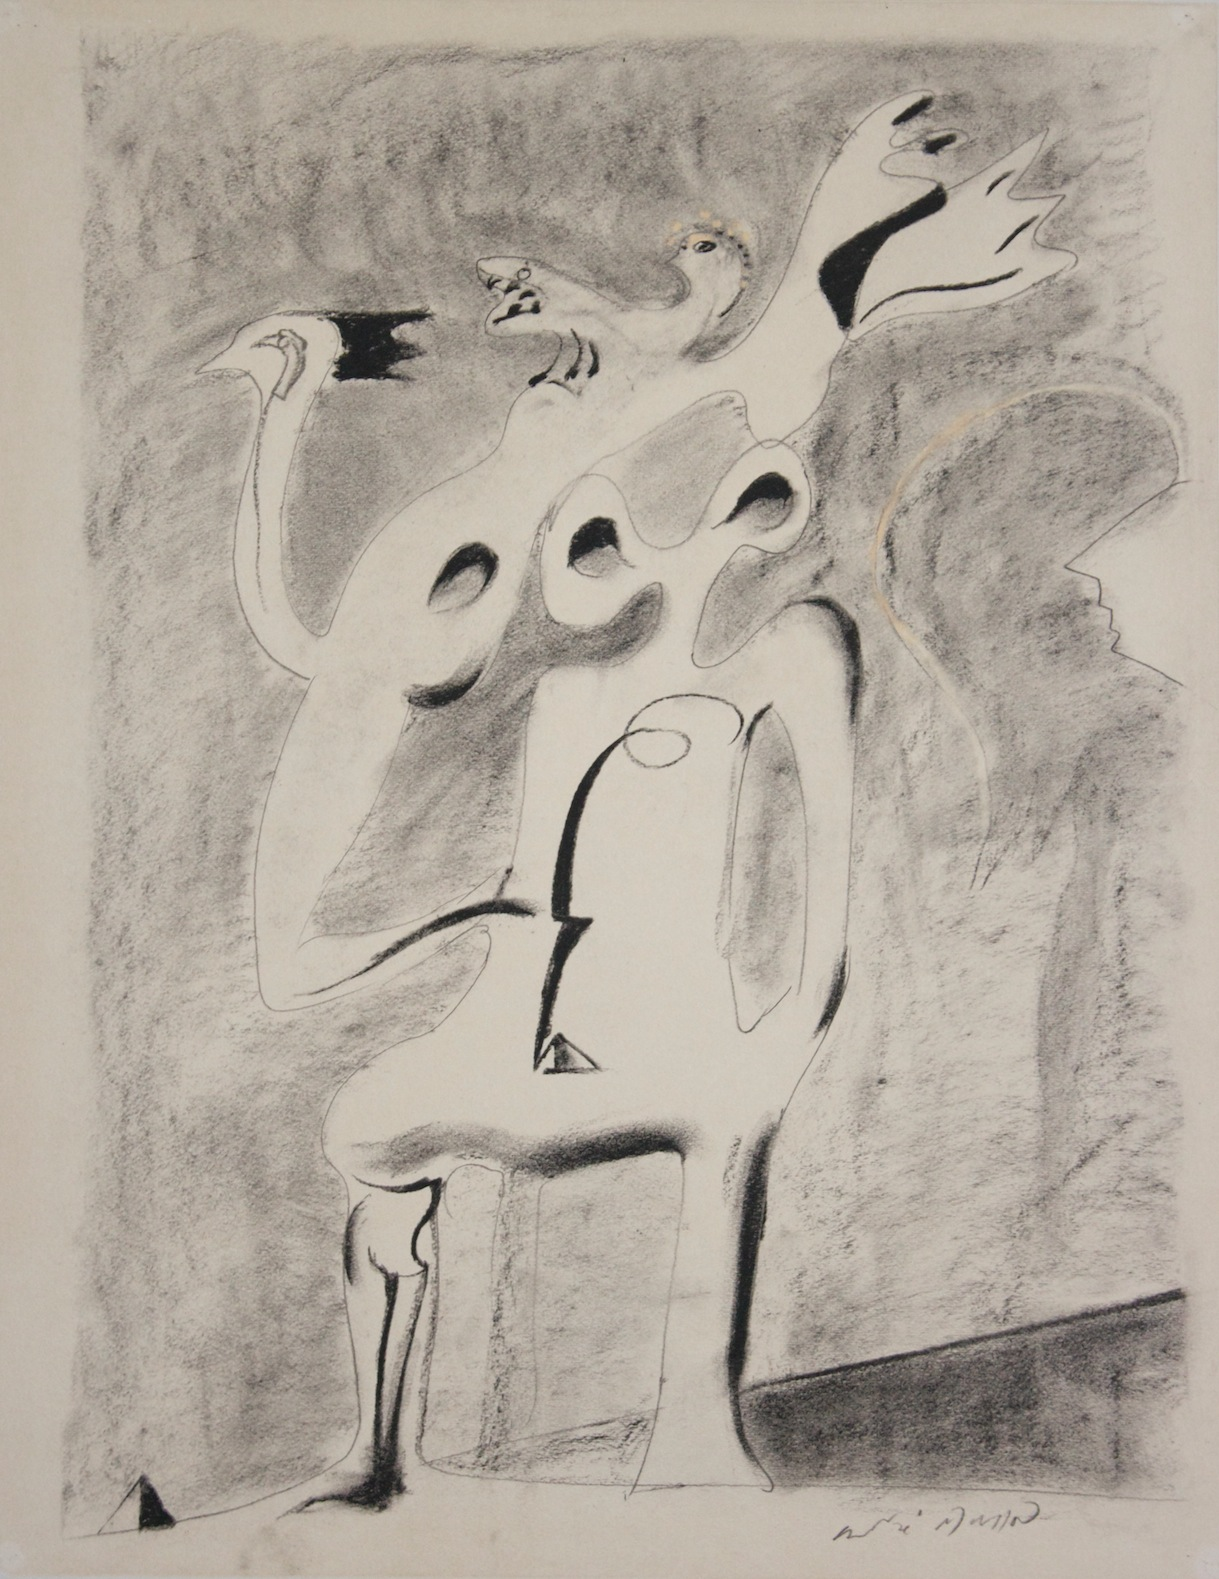 André Masson - Monument Pour Un Desert - Lithograph on paper - 1941